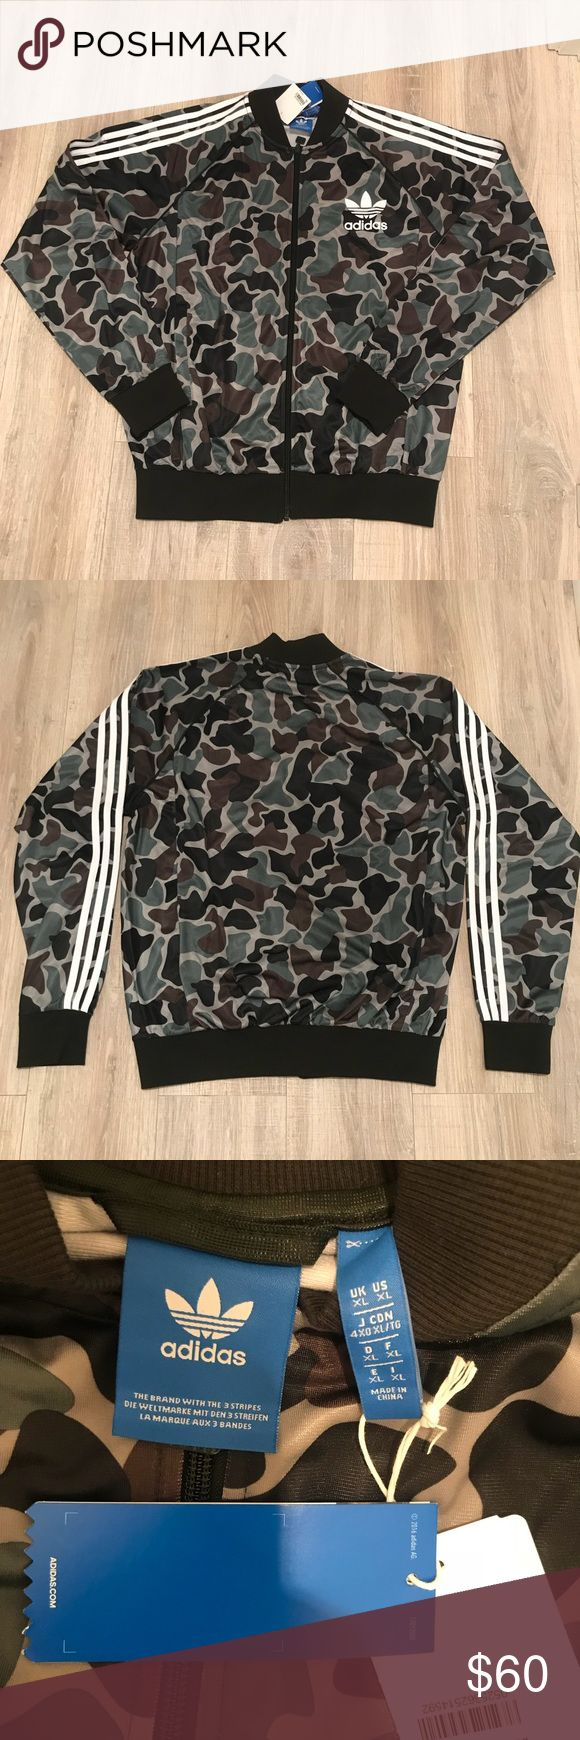 BNWT ADIDAS CAMOUFLAGE TRACK JACKET Men's extra large (pictured on a M/L). Brand new. adidas Jackets & Coats